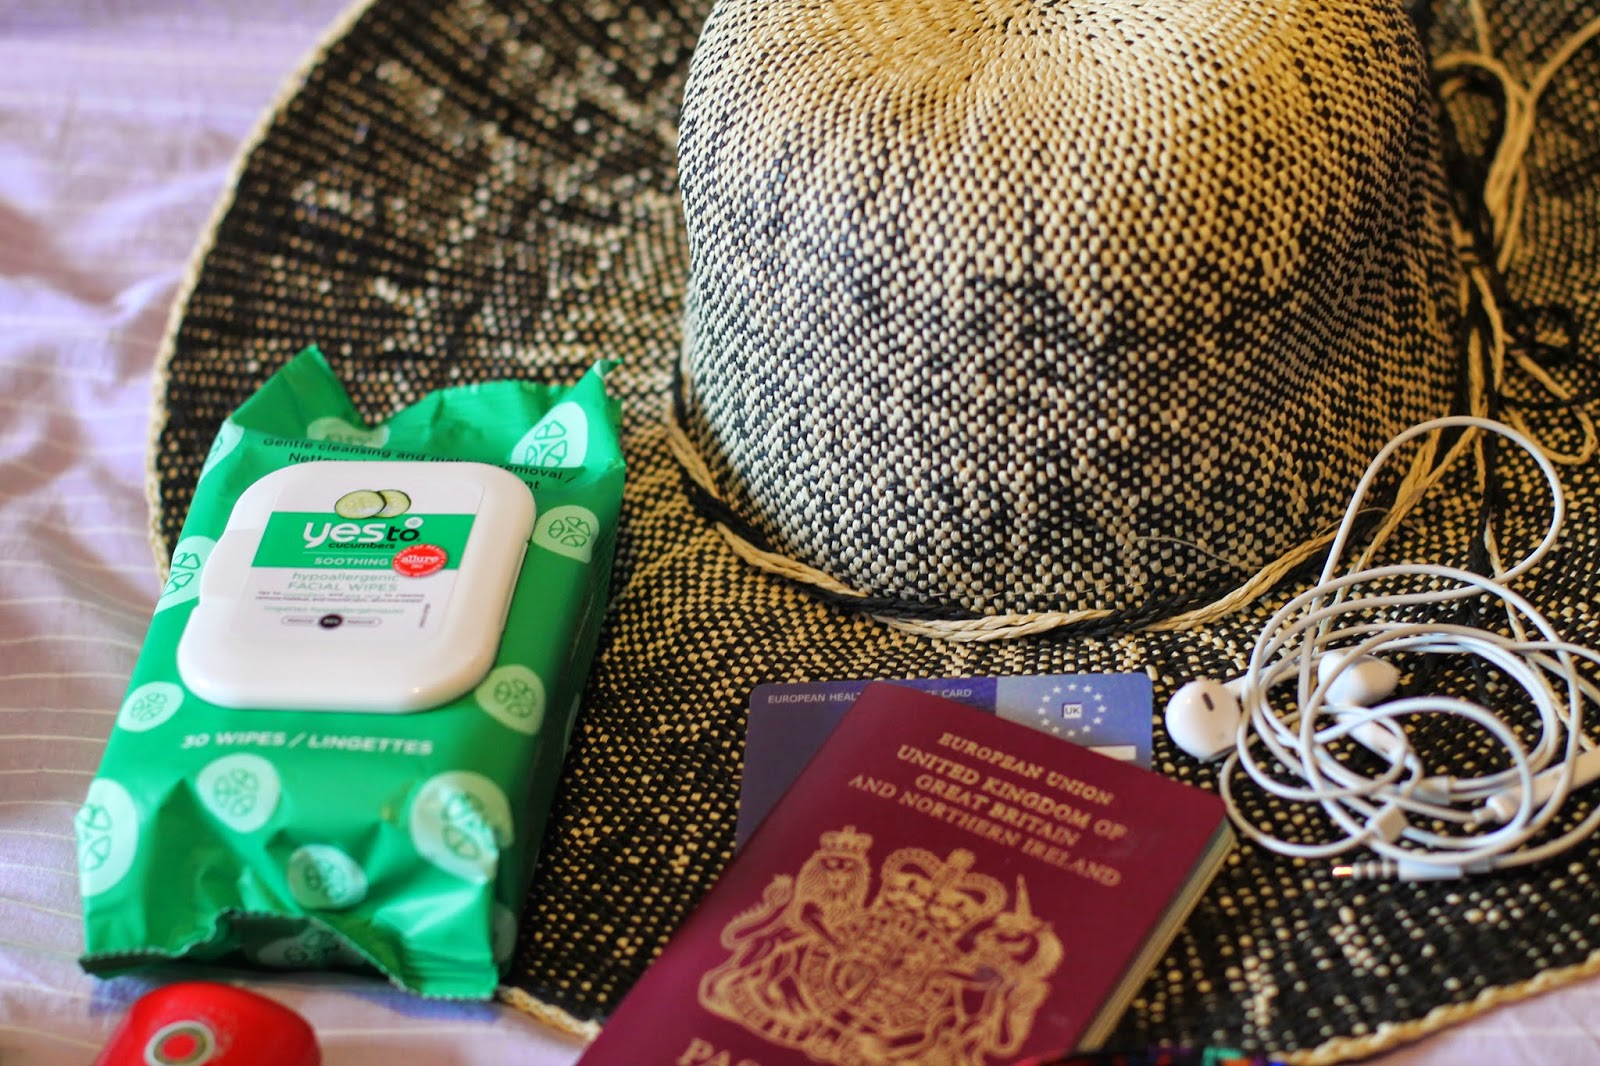 Hat, Wipes, Passport